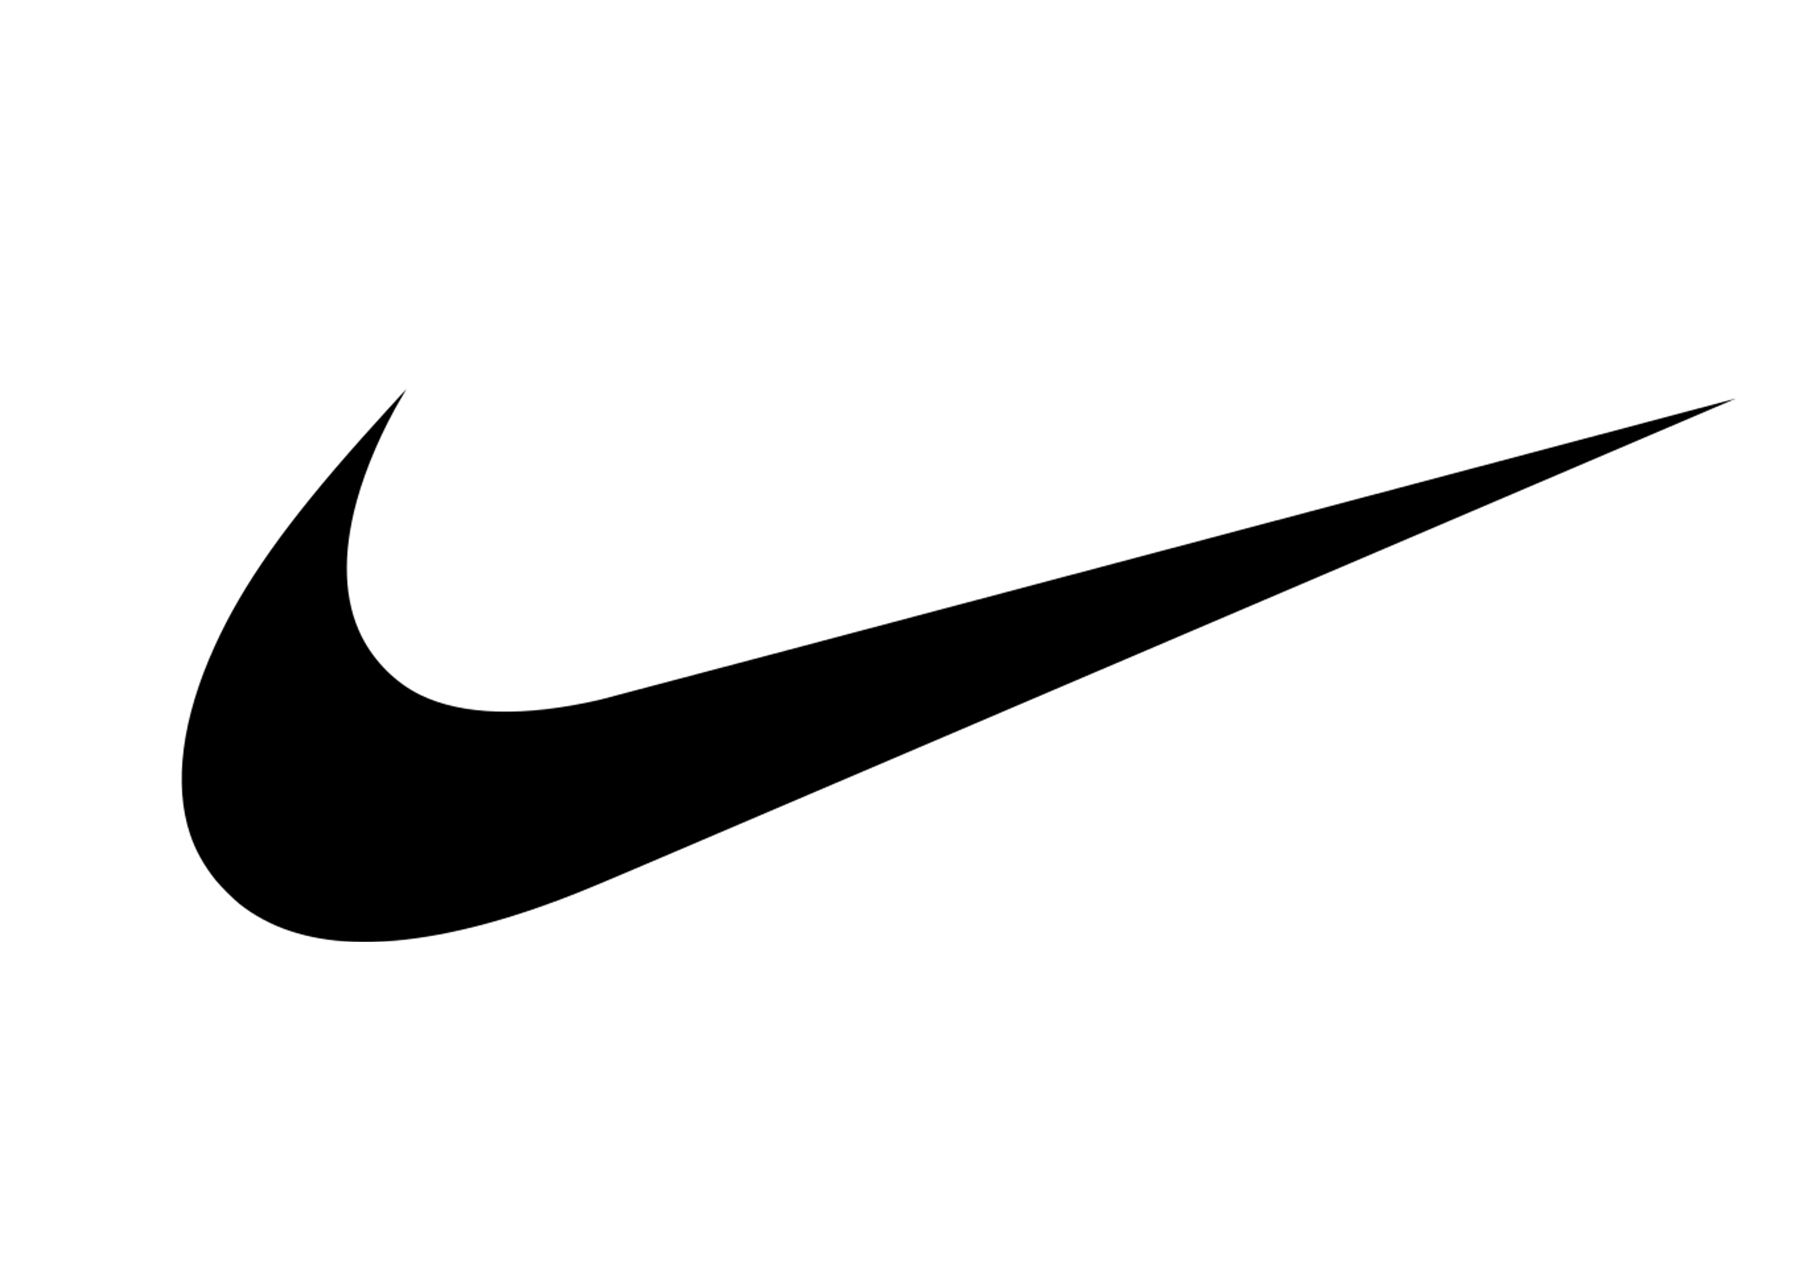 zutt-gef-neuromarketing-nike-logo